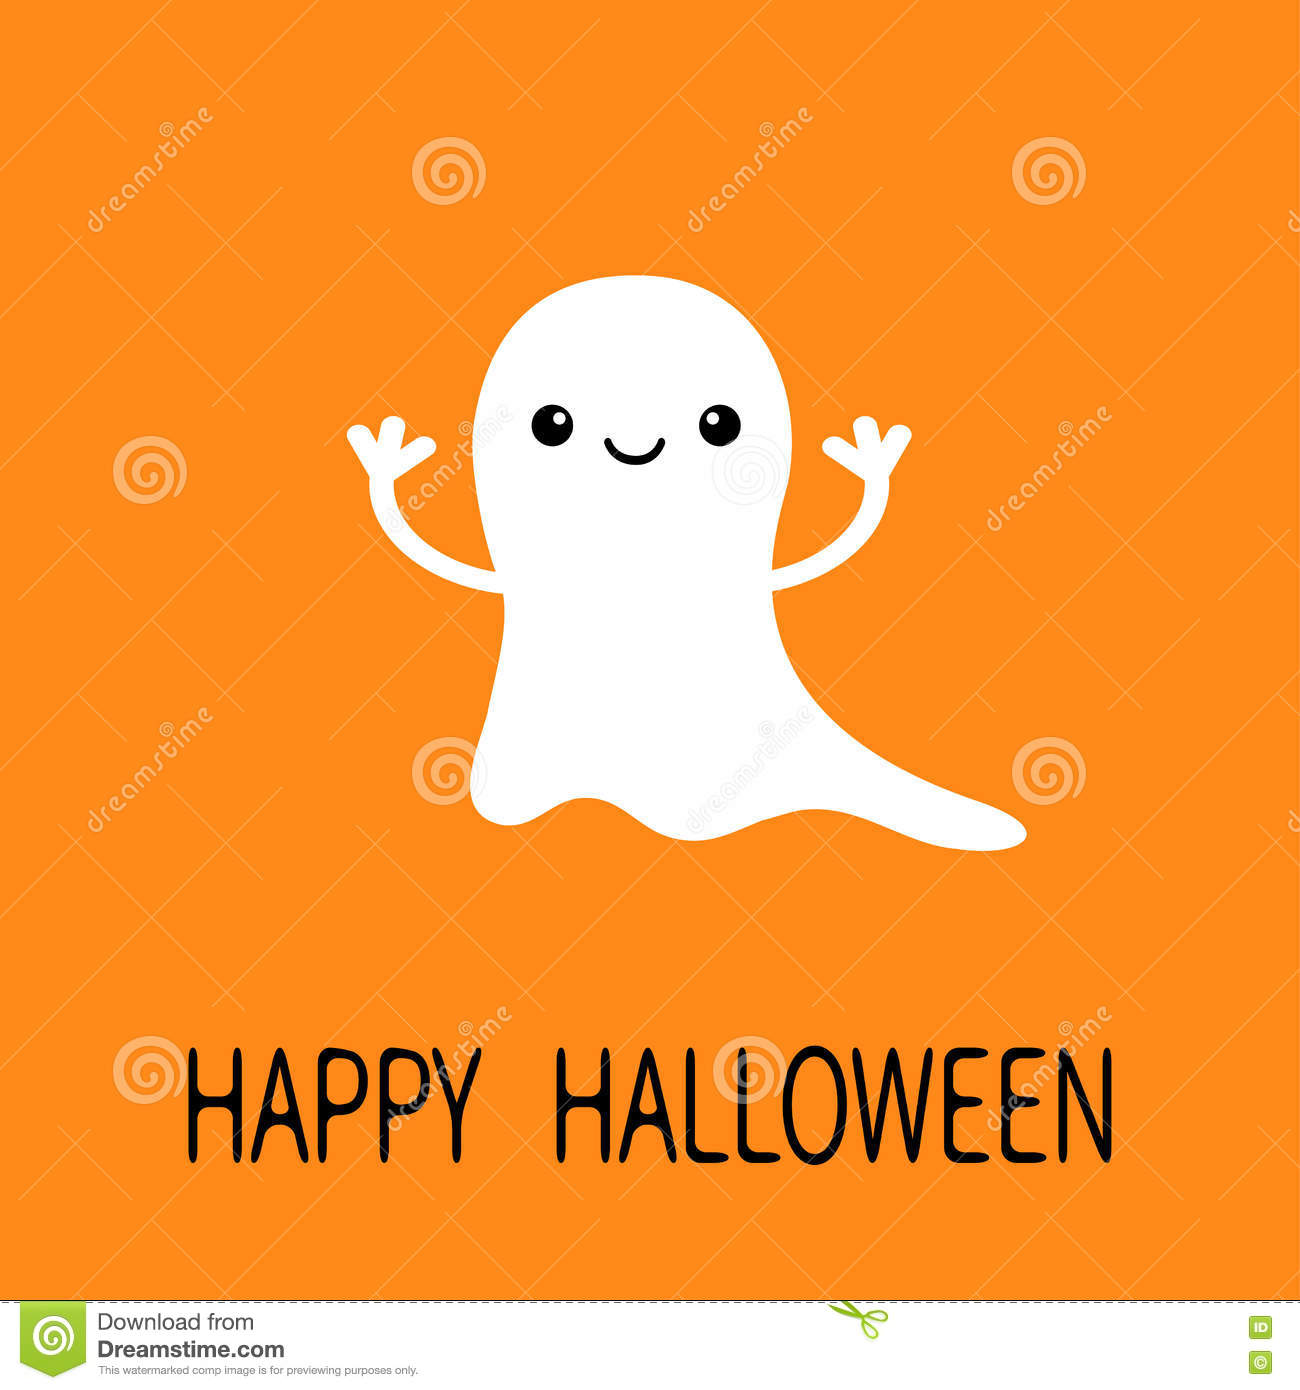 funny flying baby ghost. smiling face. happy halloween. greeting